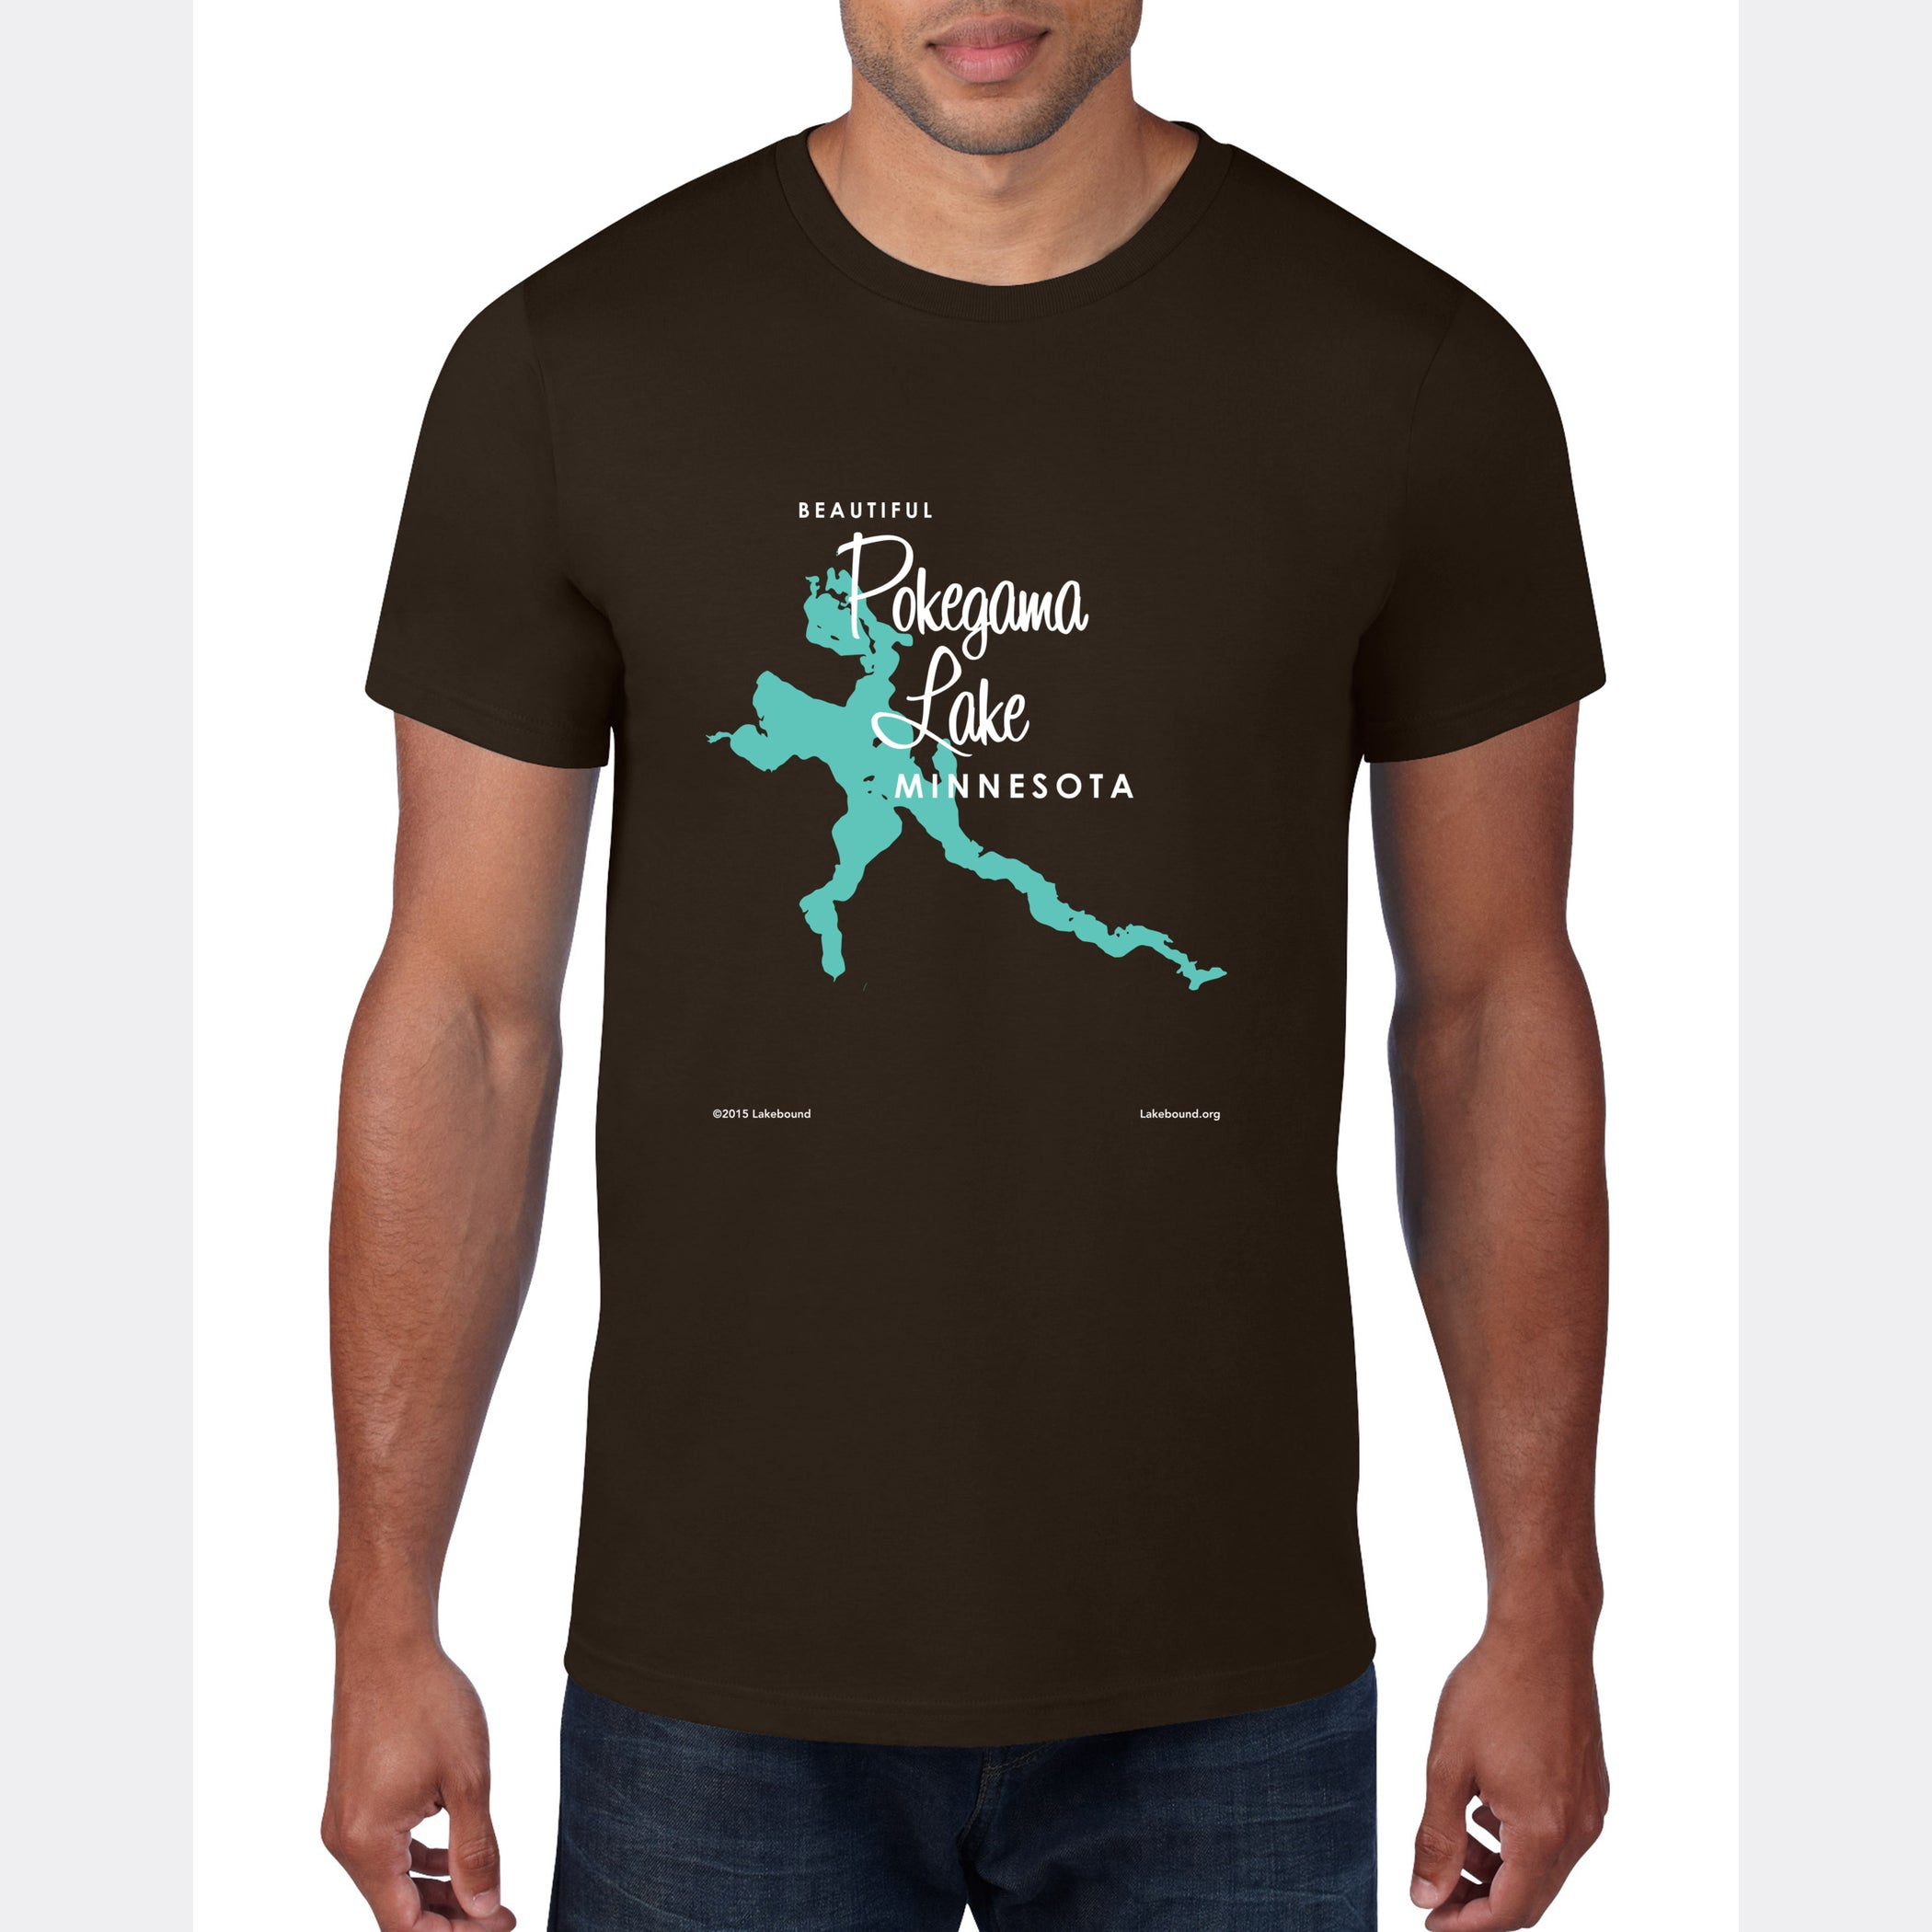 Pokegama Lake Minnesota, T-Shirt